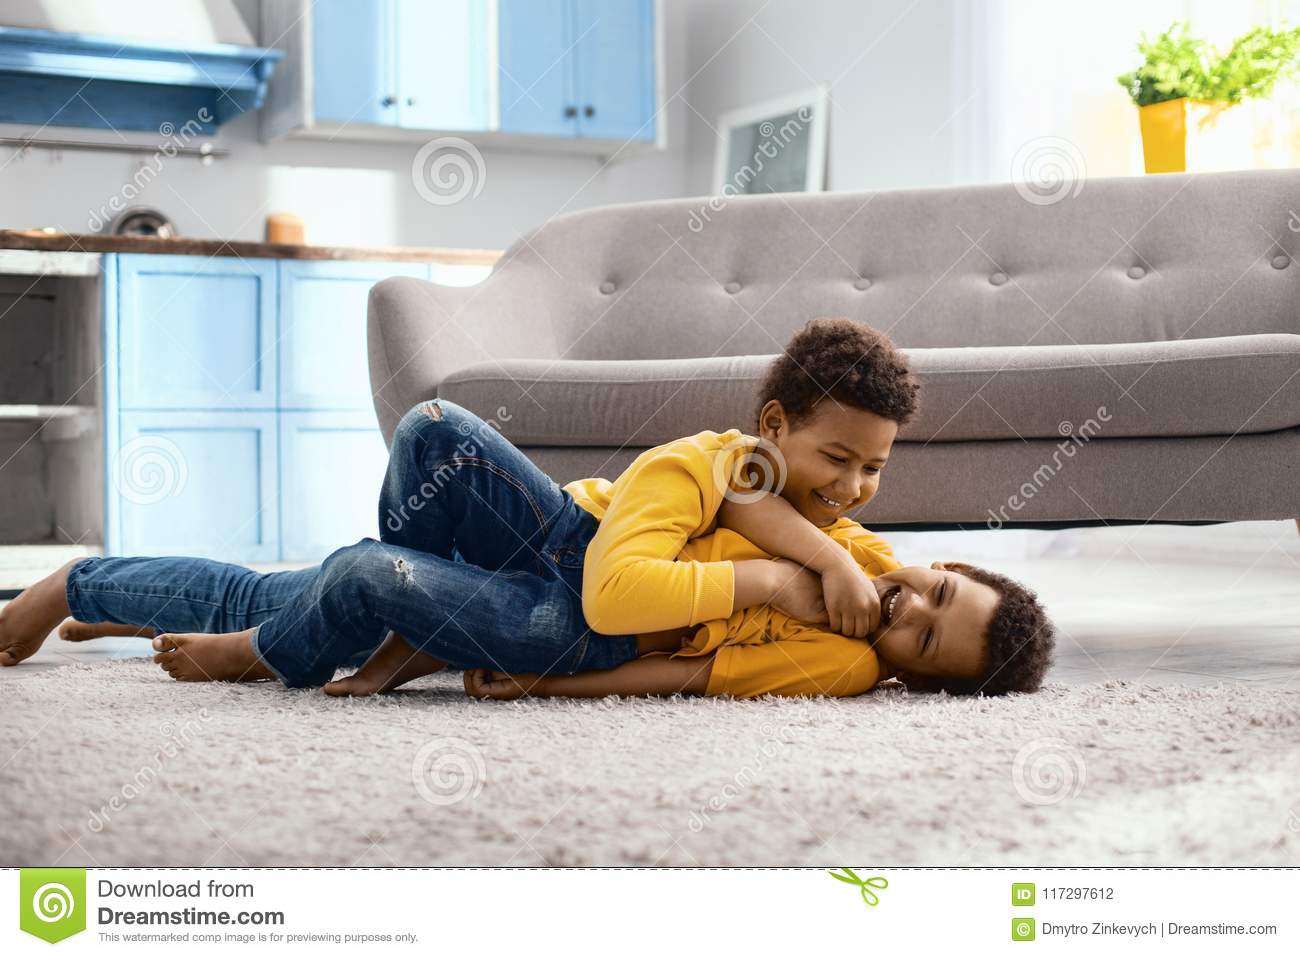 Cheerful little boy tickling his younger brother on floor